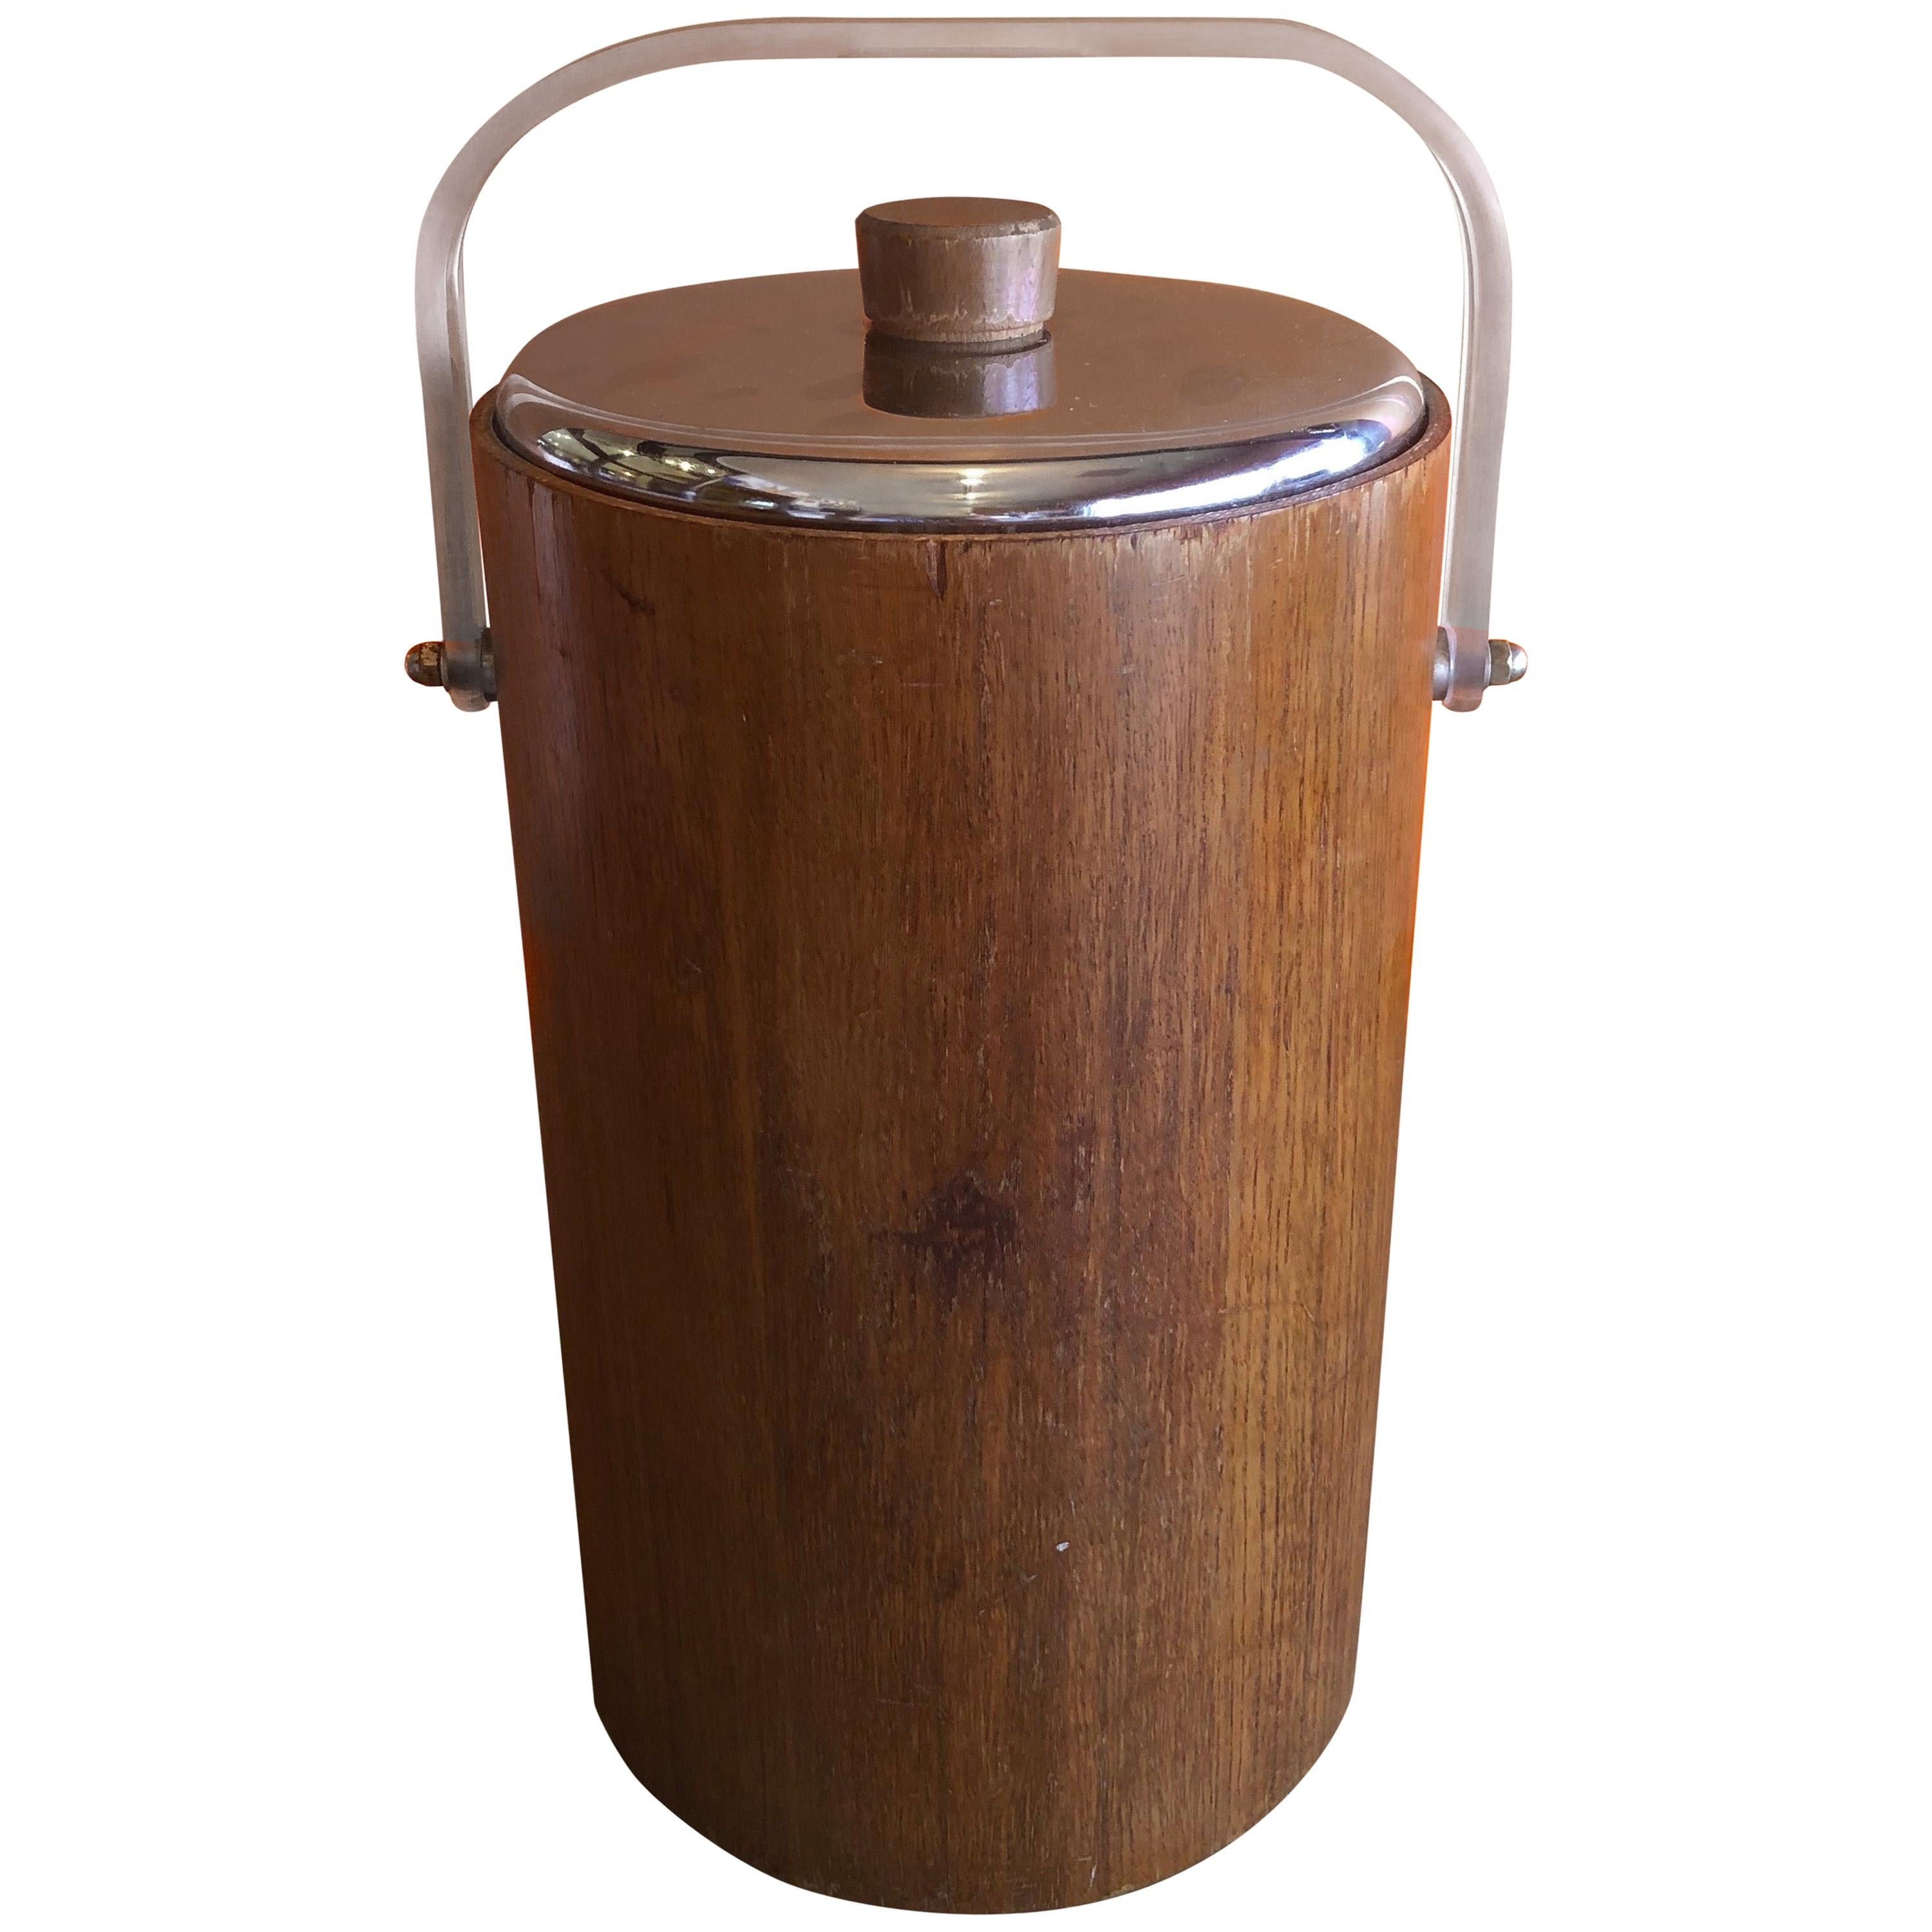 Midcentury Teak Ice Bucket with Thermos Glass Liner